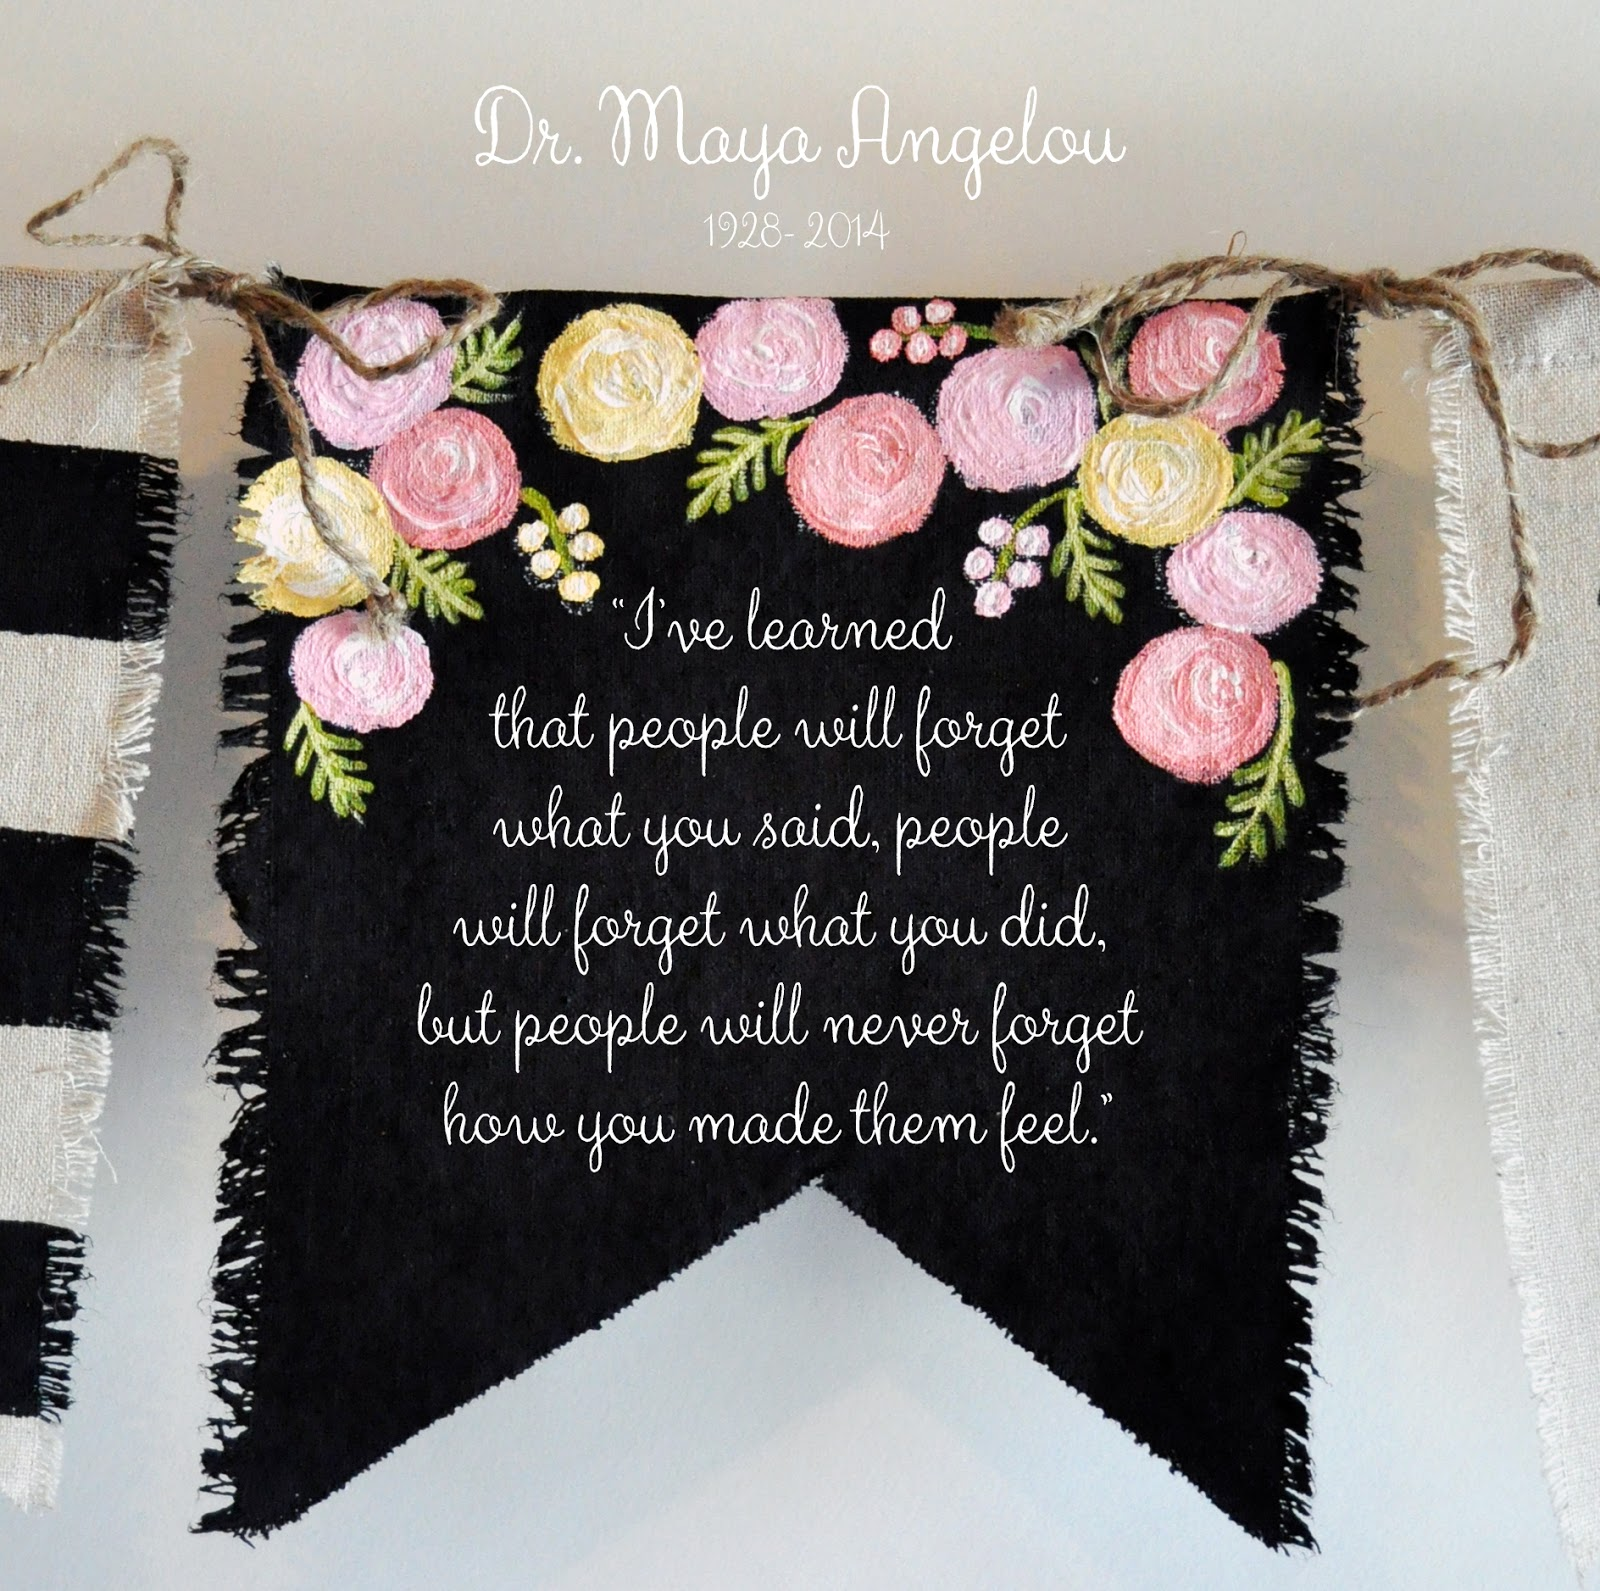 originality quotes a angelou quotesgram a angelou quotes